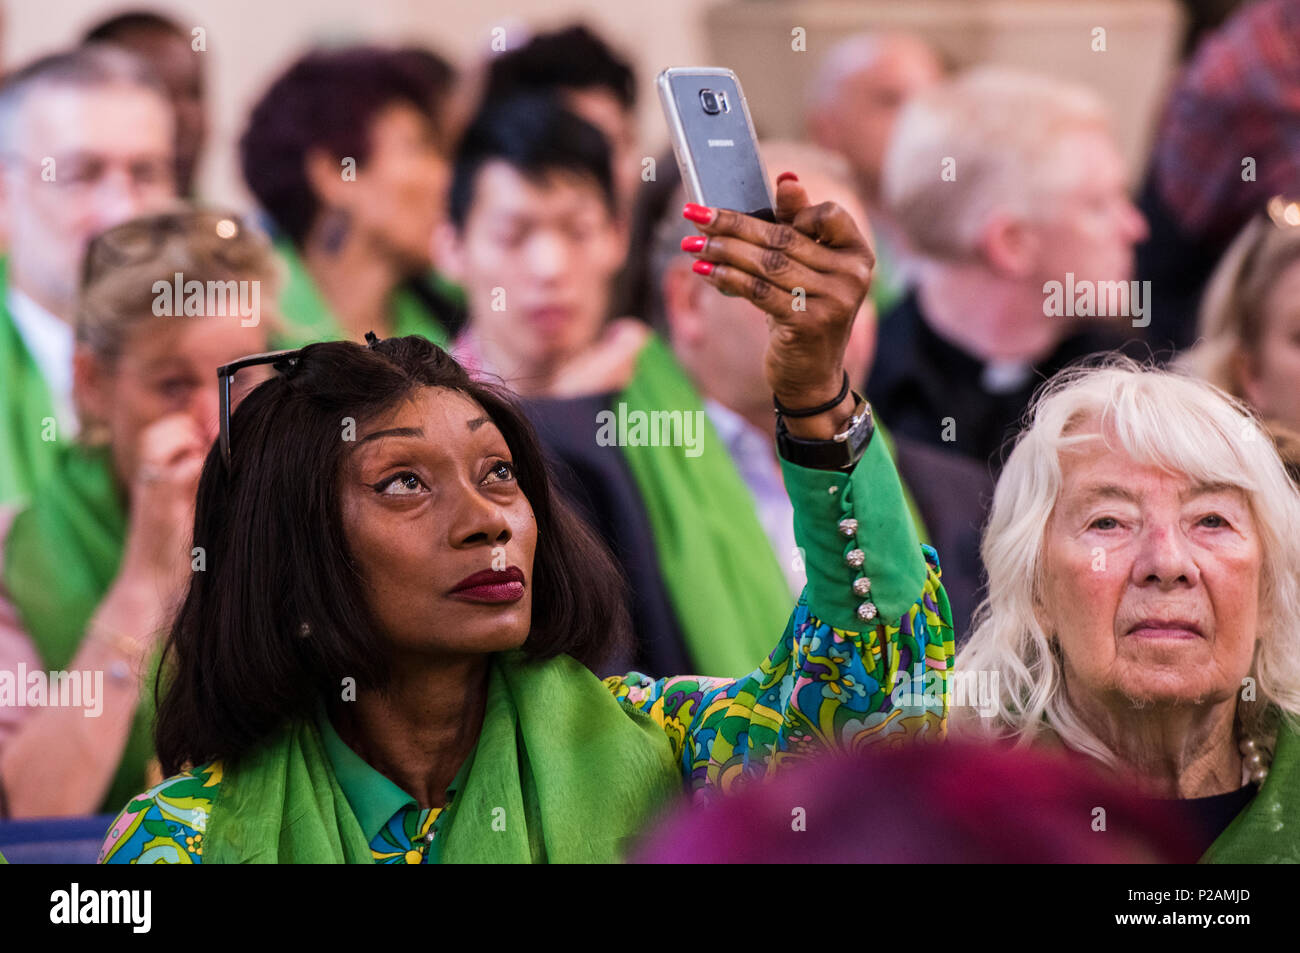 A teary woman holds up her mobile phone while attending the service to mark the Grenfell Fire anniversary in St Helen's Church, North Kensington, London, England, UK, 14th June, 2018s - Stock Image